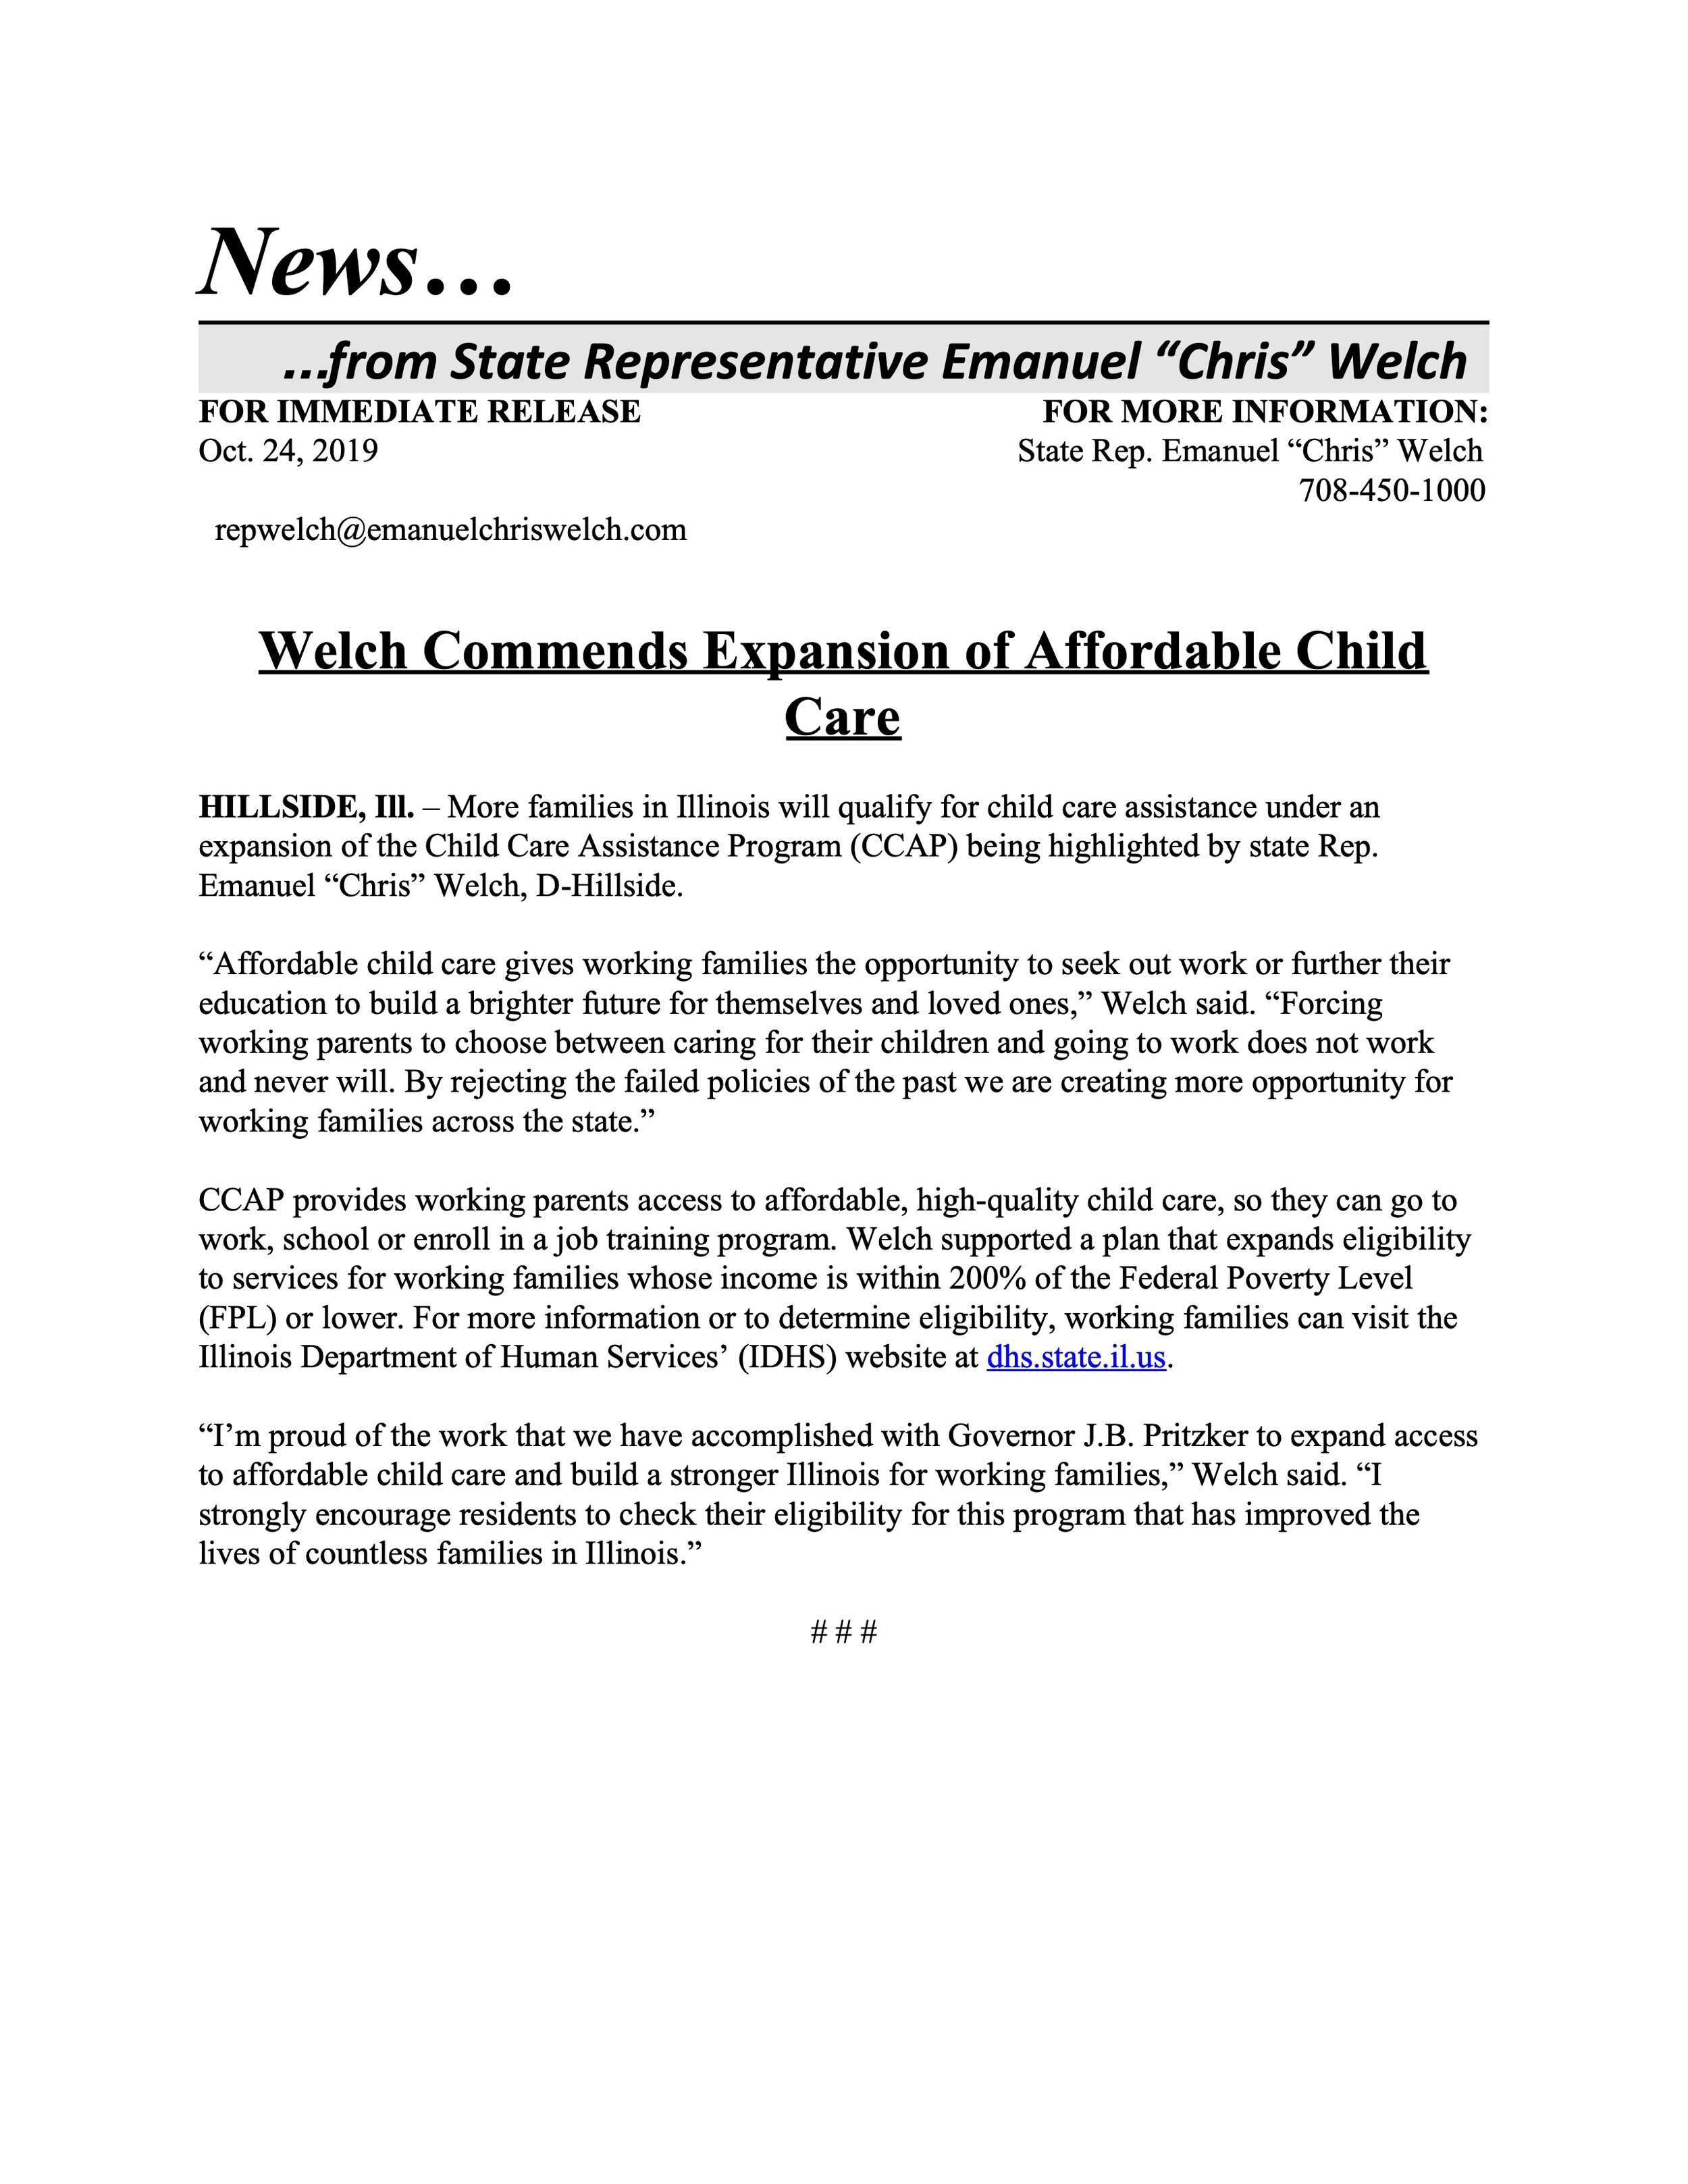 Welch Commends Expansion of Affordable Child Care  (October 24, 2019)